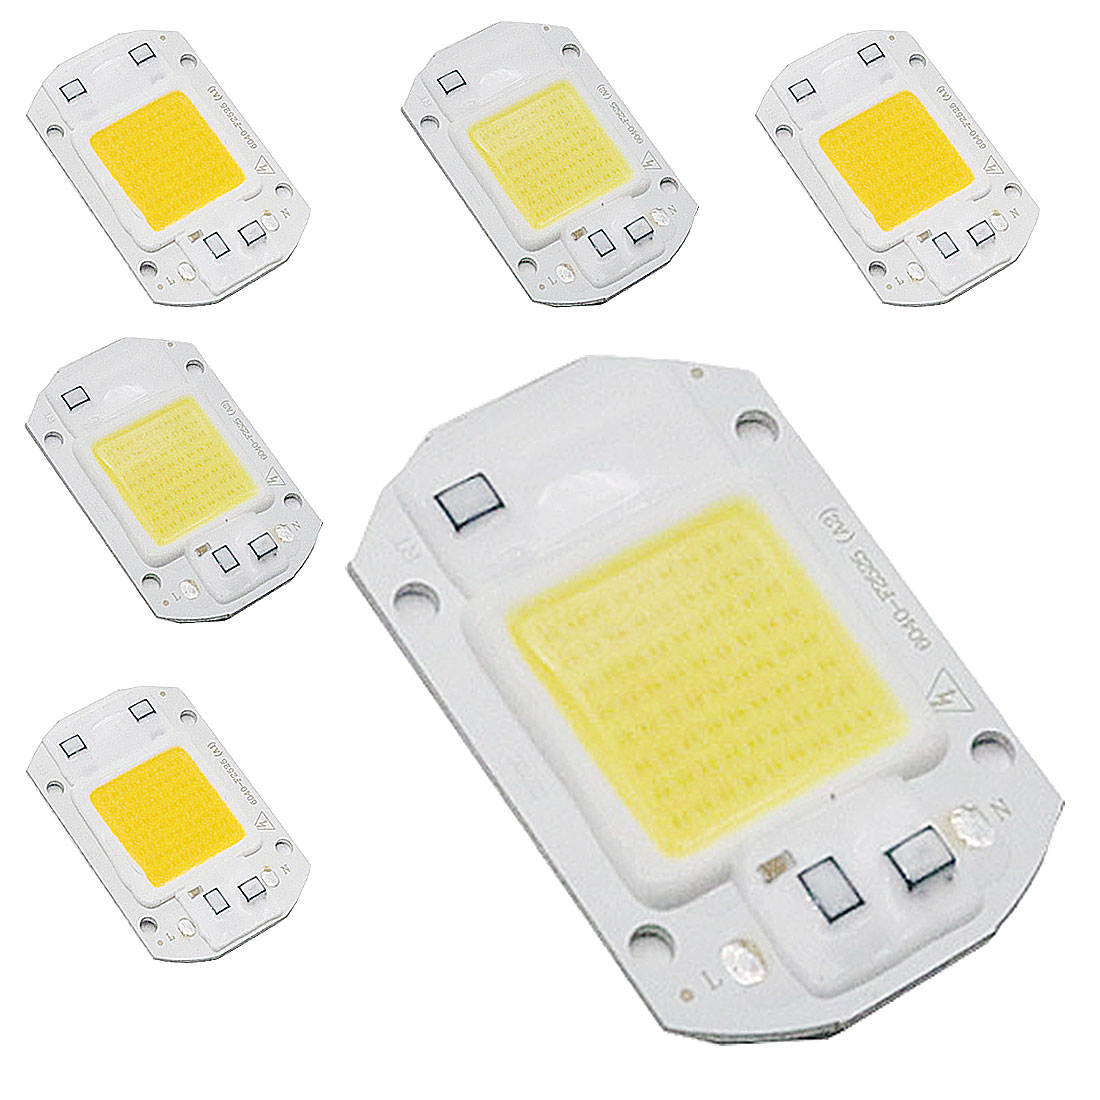 AC110V SMD 20W 30W 50W White/ Warm White With Smart IC High Power DIY Outdoor Floodlight Spotlight LED COB Chip Flood Light Lamp